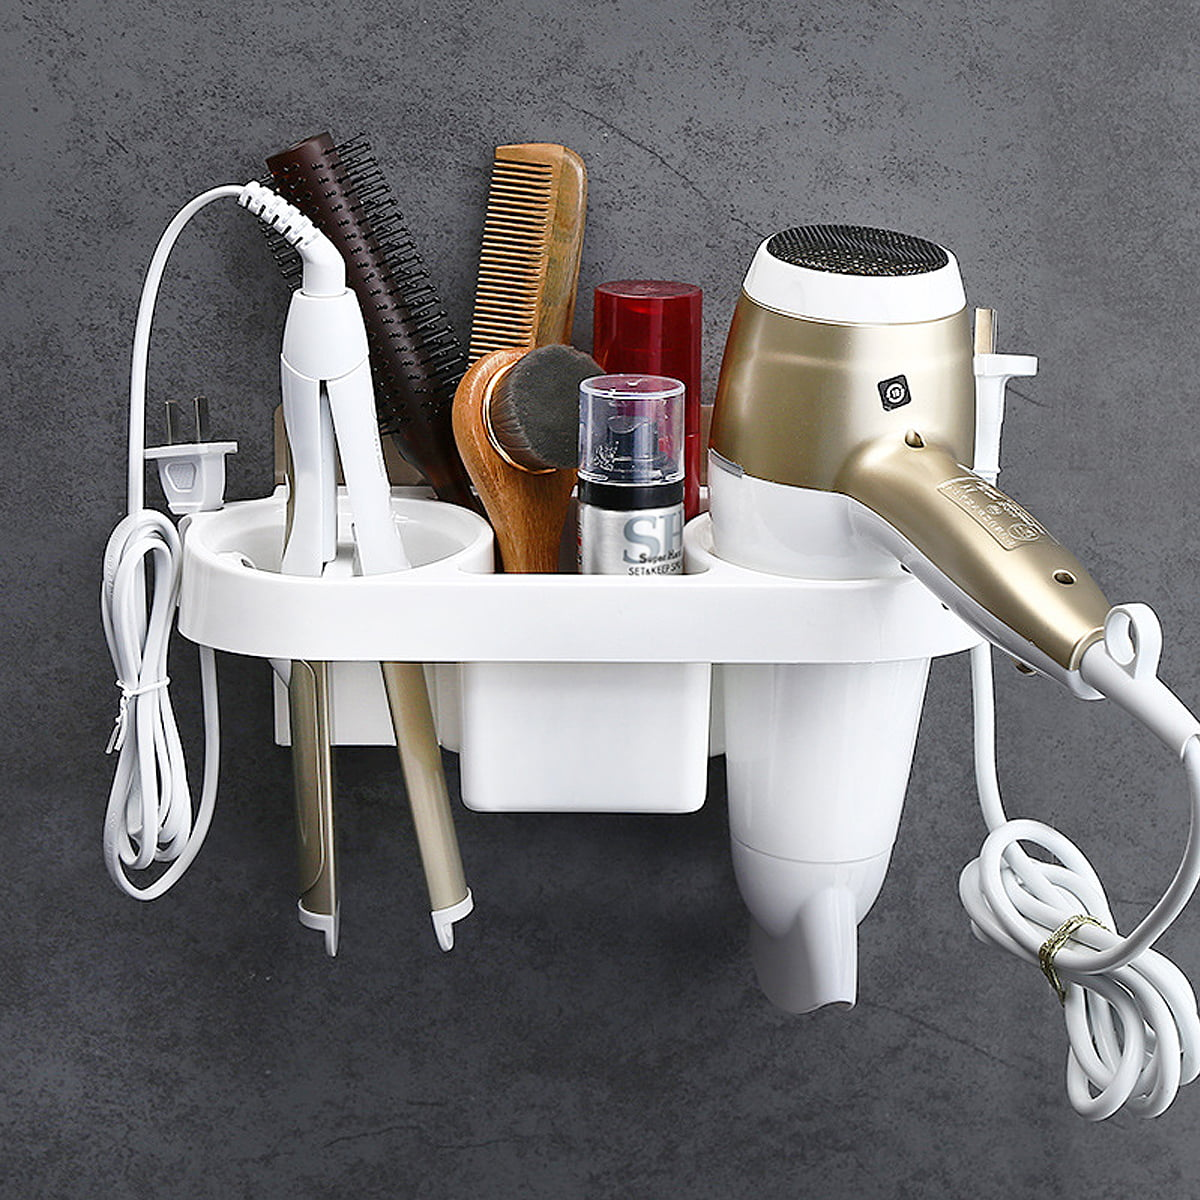 Bathroom Wall Mounted Holder Razor Shaver Rack Suction Cup Adhesive Storage Tool